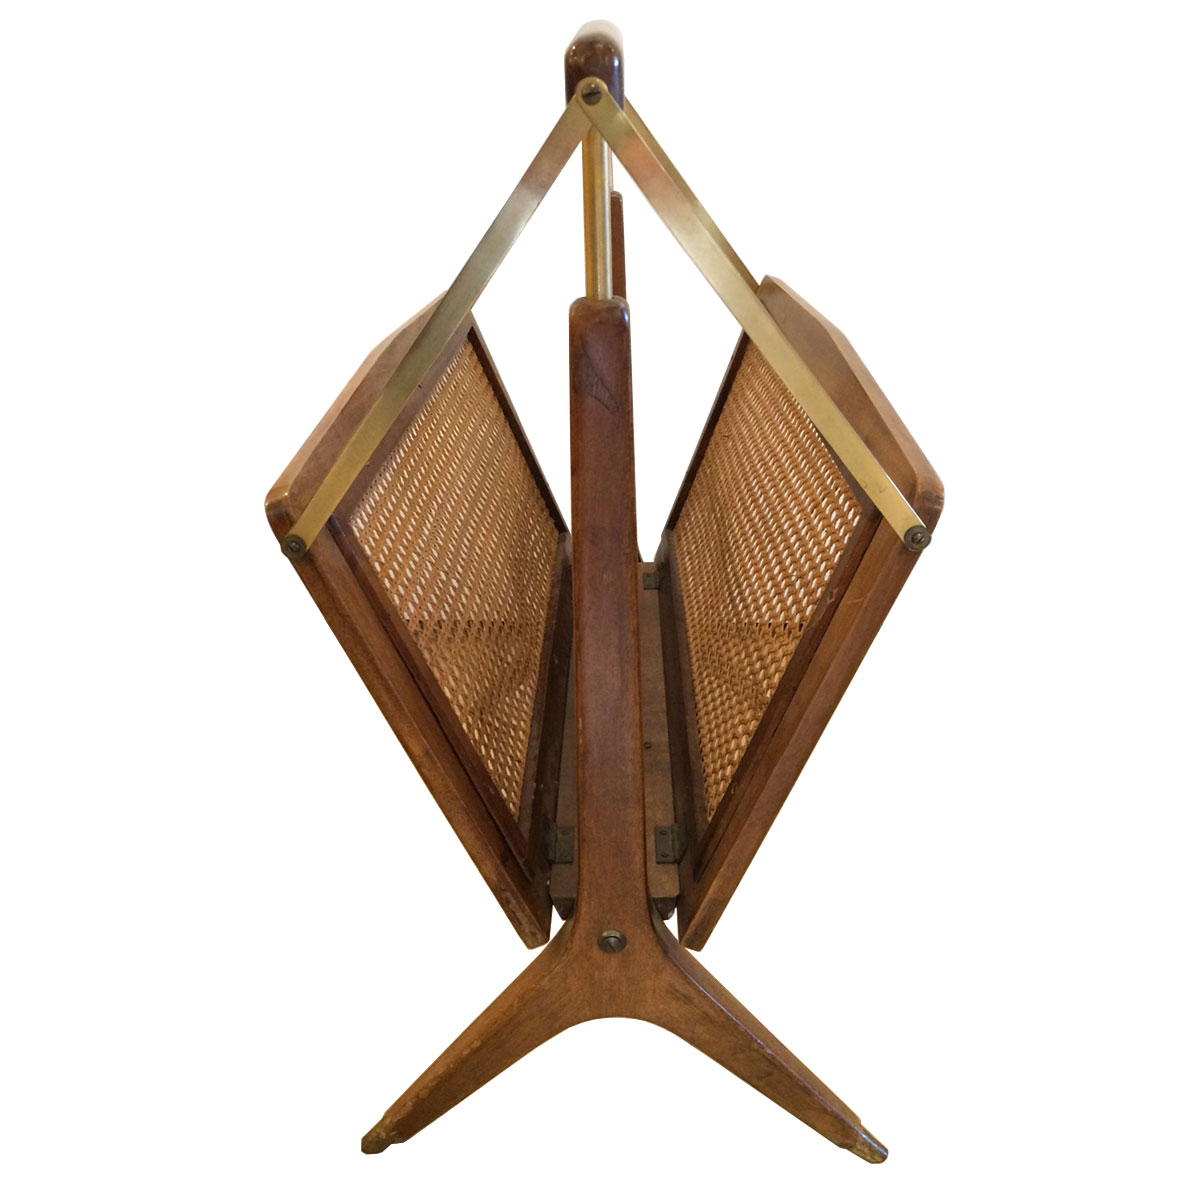 Ico Parisi Italian Folding Magazine Rack in Walnut, Brass & Caning